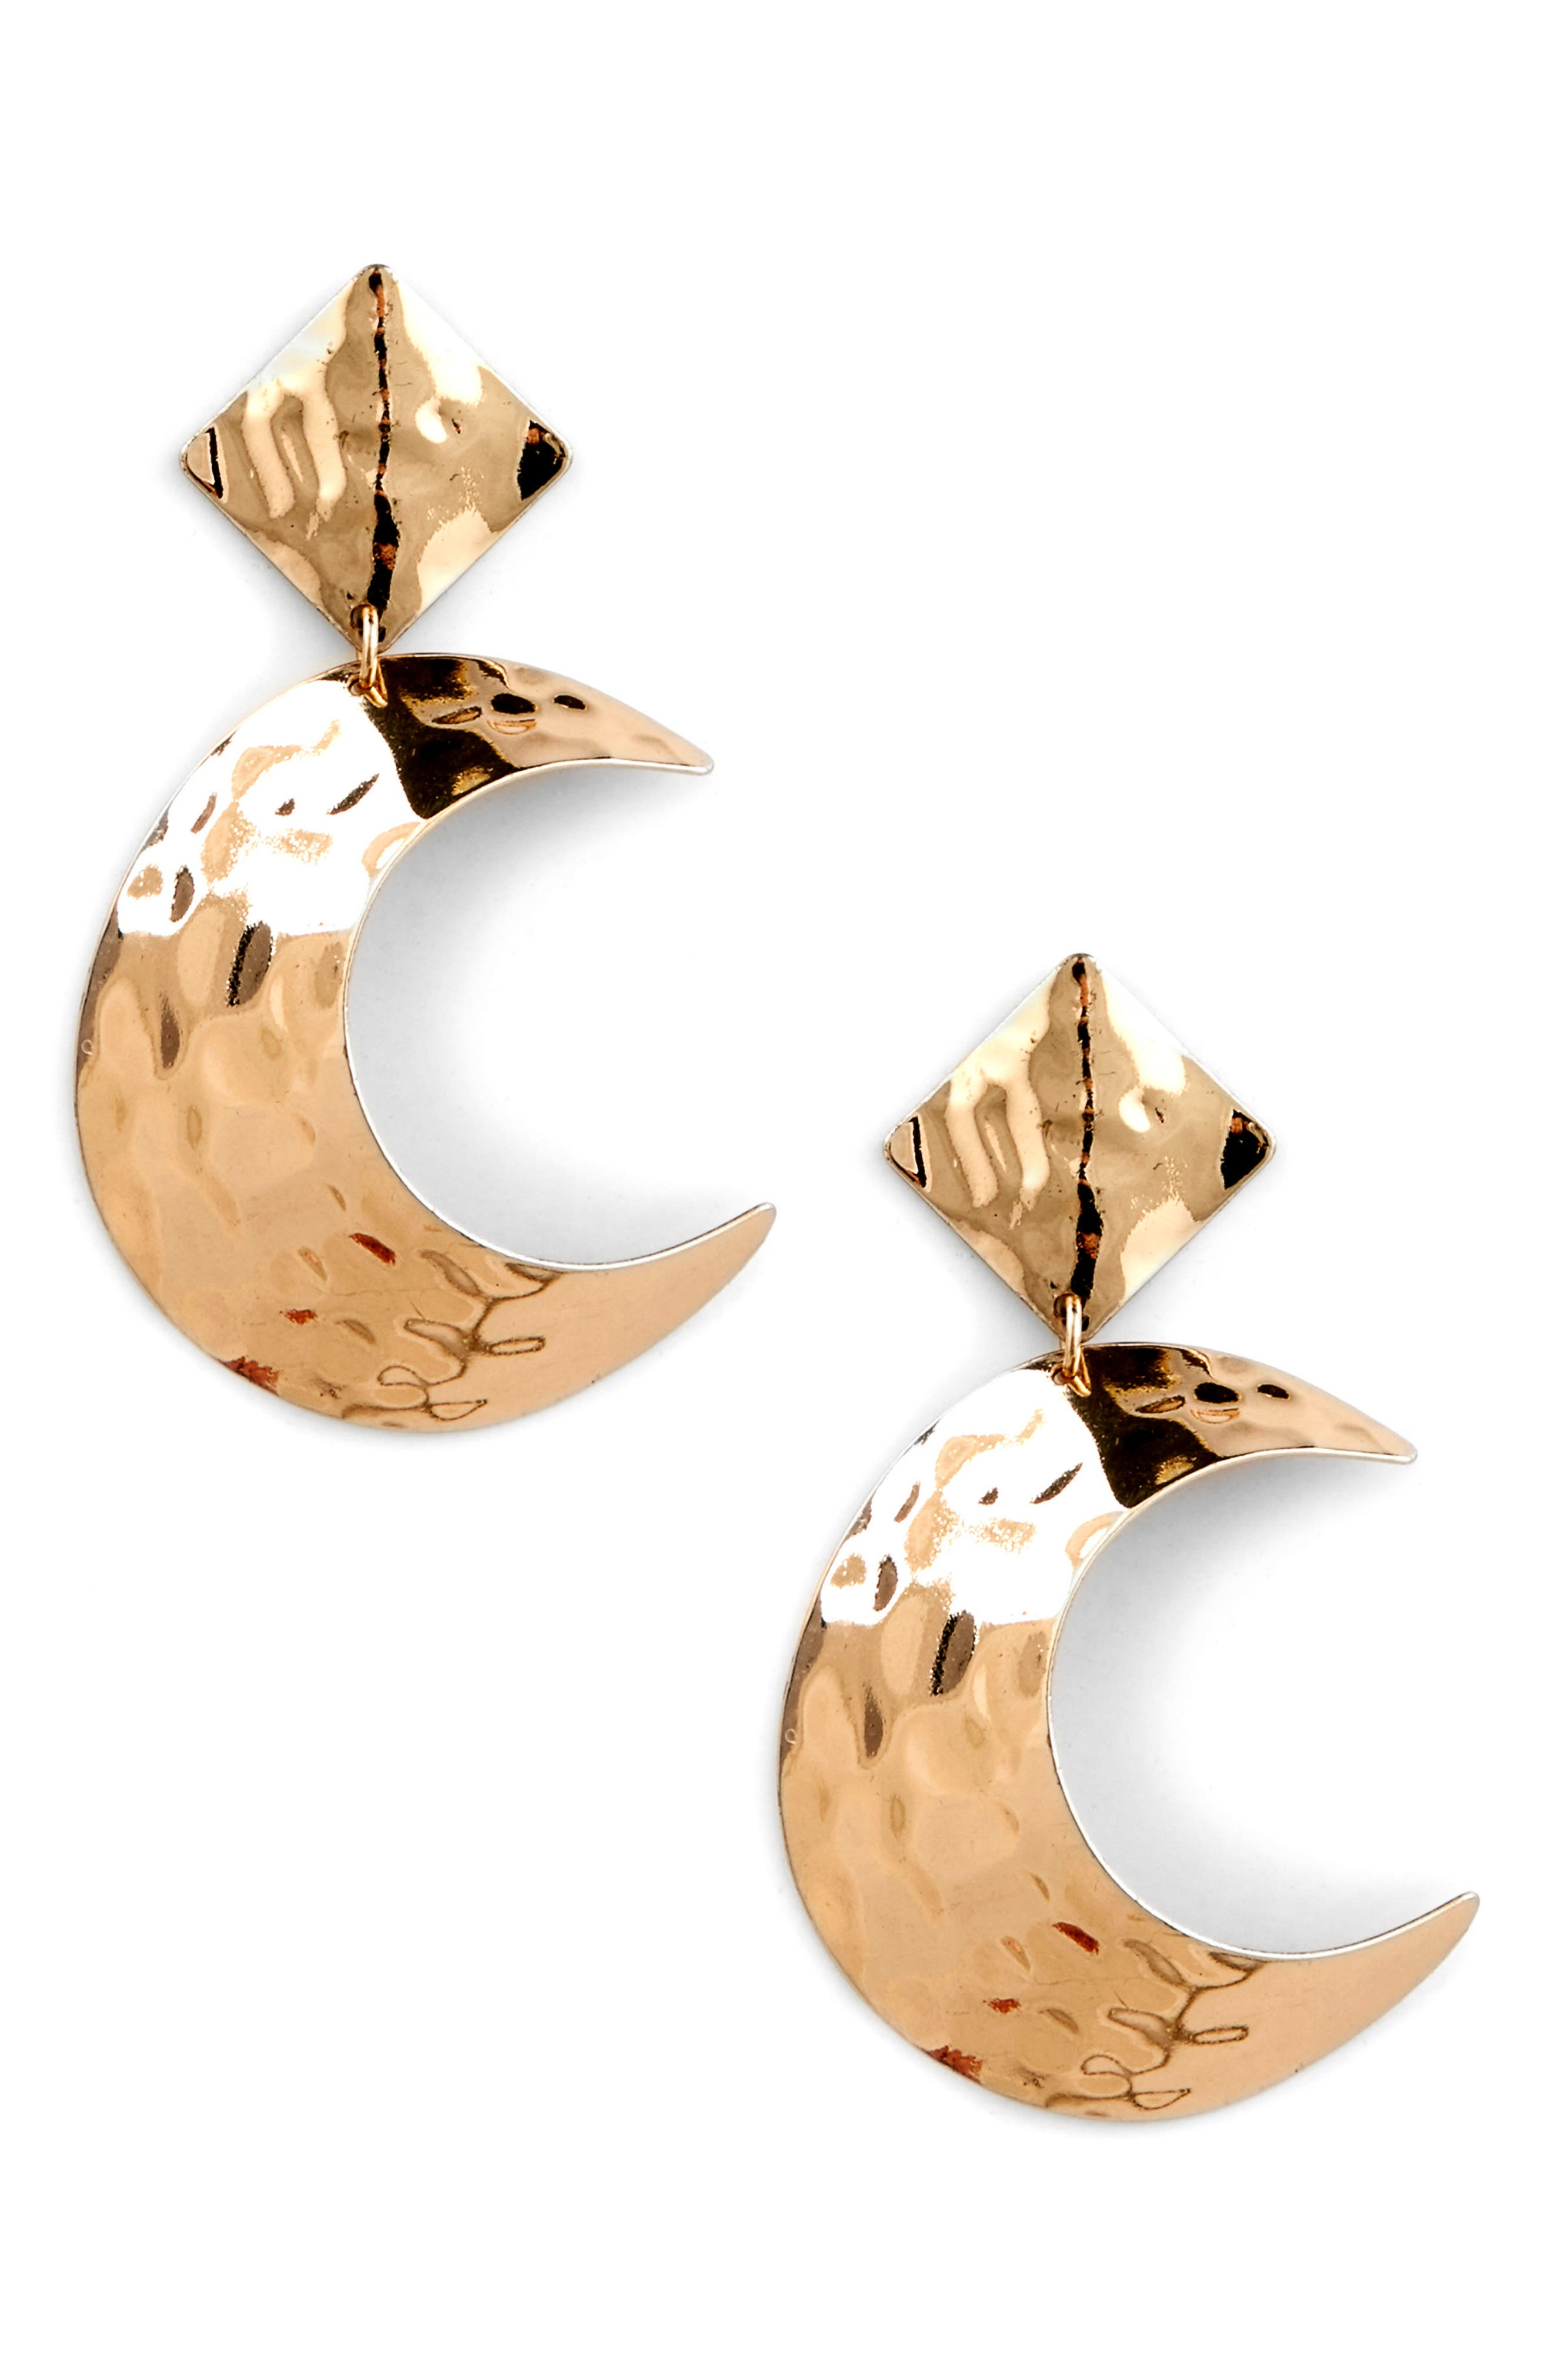 Lunar Statement Earrings,                         Main,                         color, GOLD